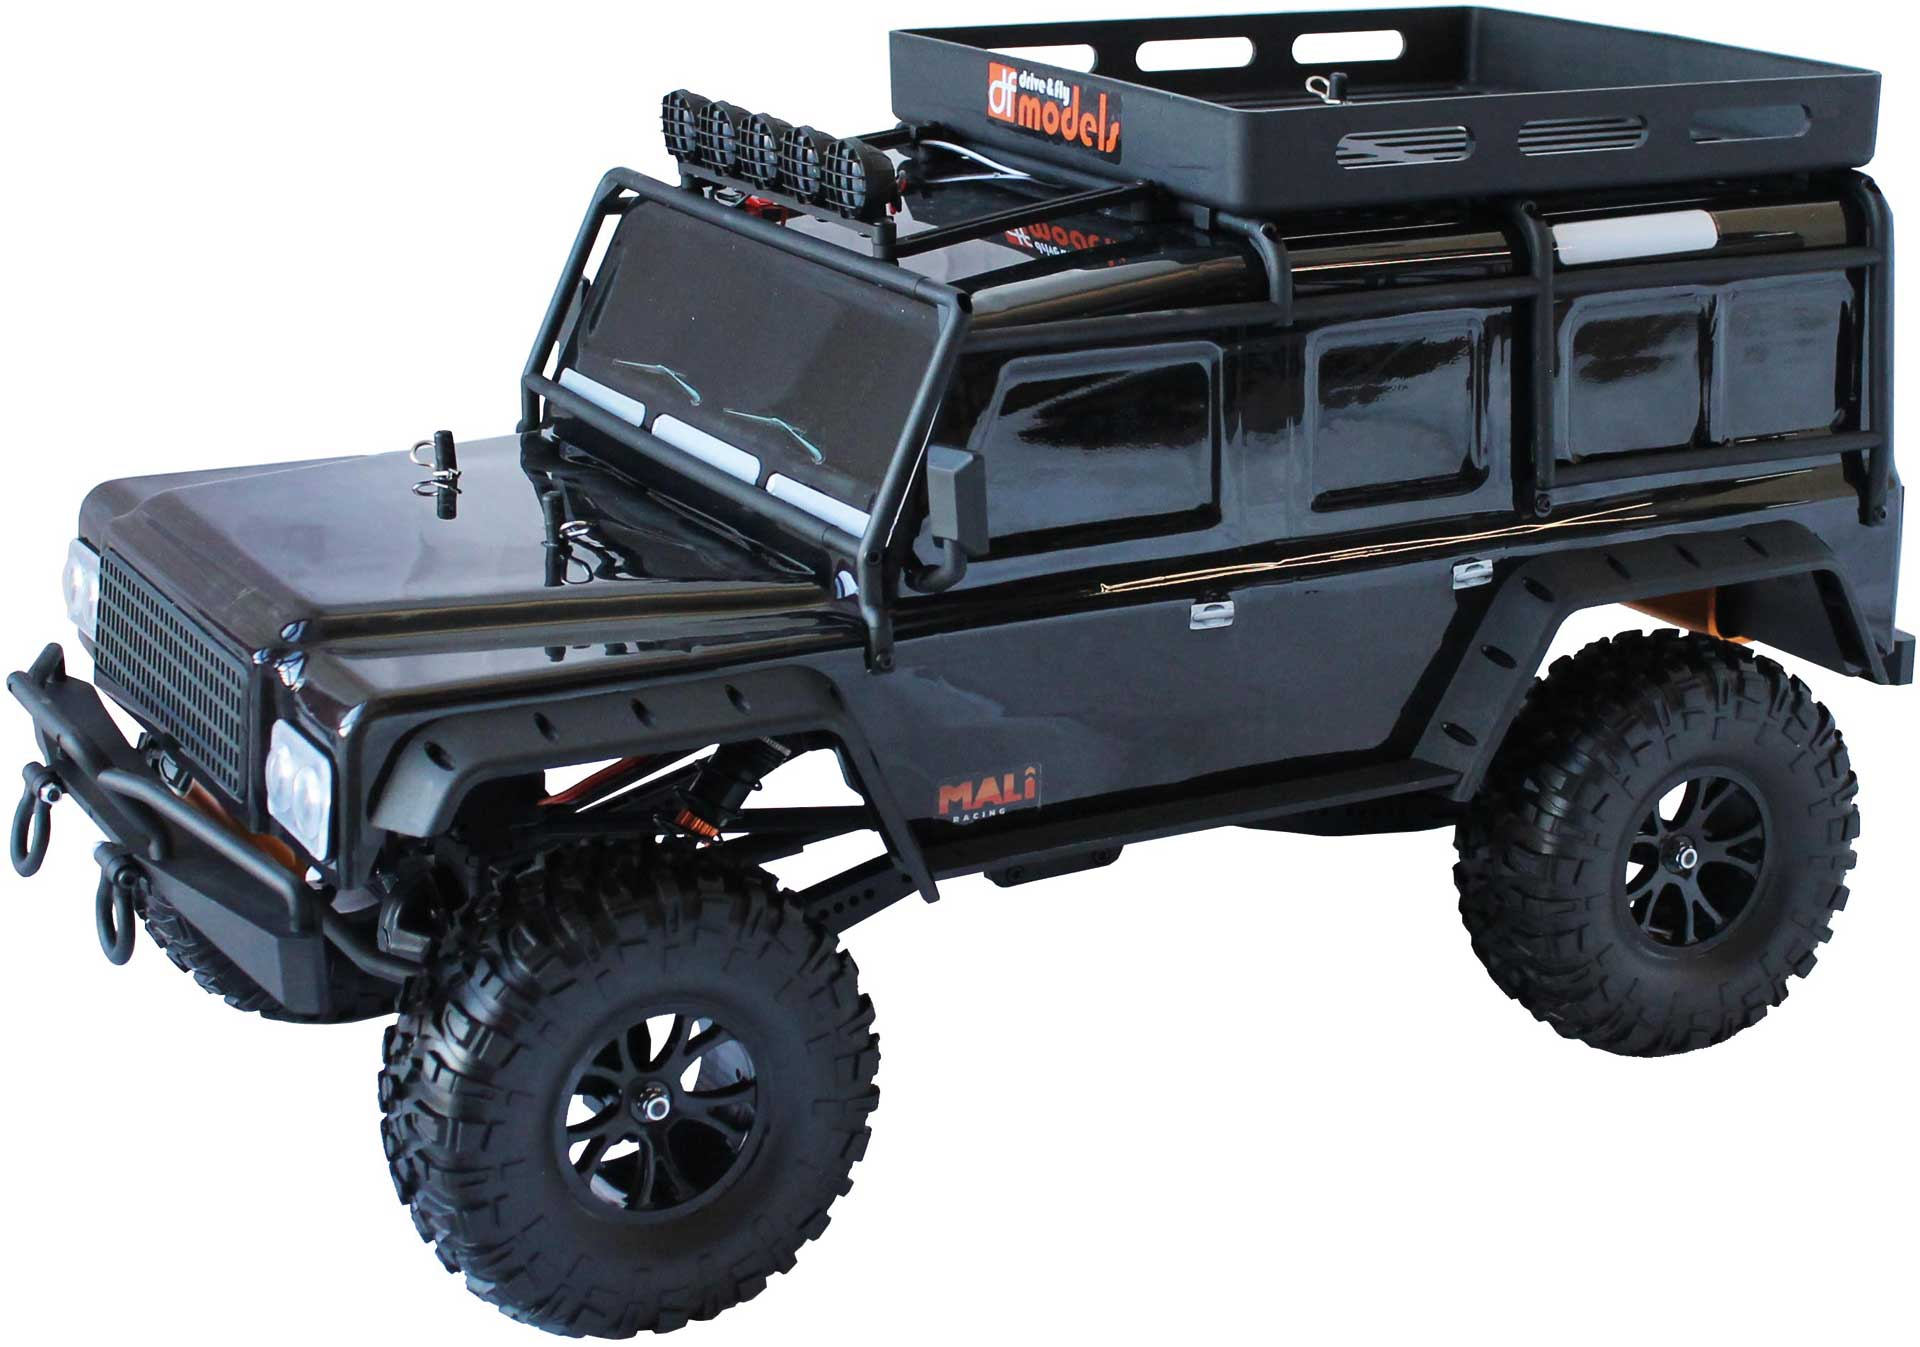 DRIVE & FLY MODELS DF-4J Crawler BLACK 2-speed LED - 2021 Edition